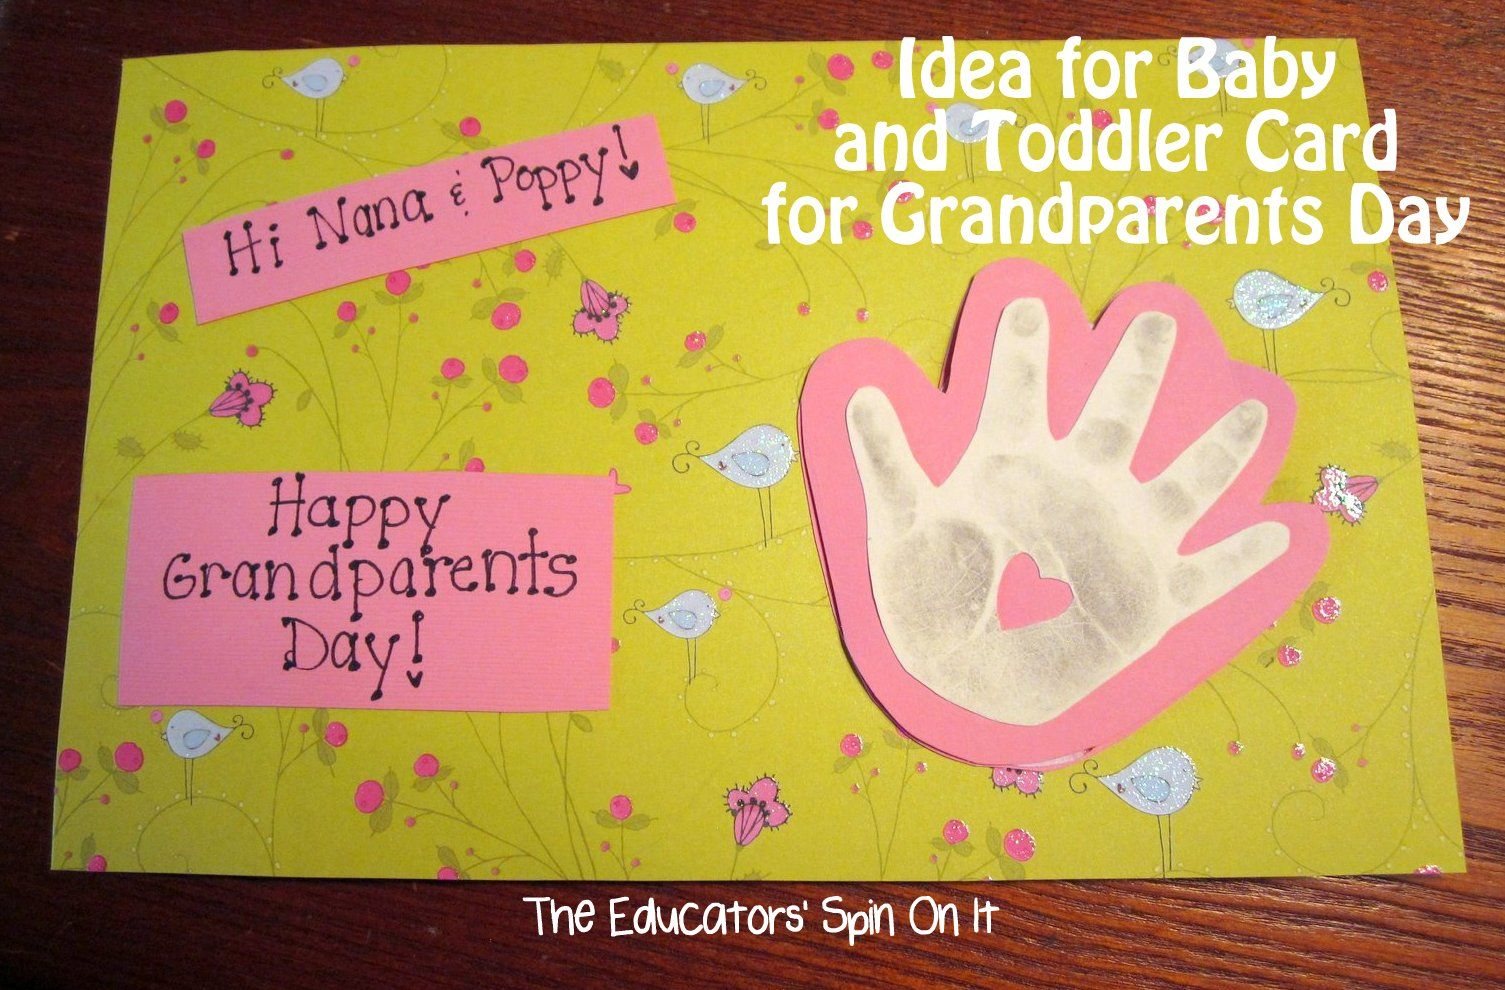 The educators spin on it handprint card for grandparents day the educators spin on it handprint card for grandparents day blowing kisses kristyandbryce Gallery